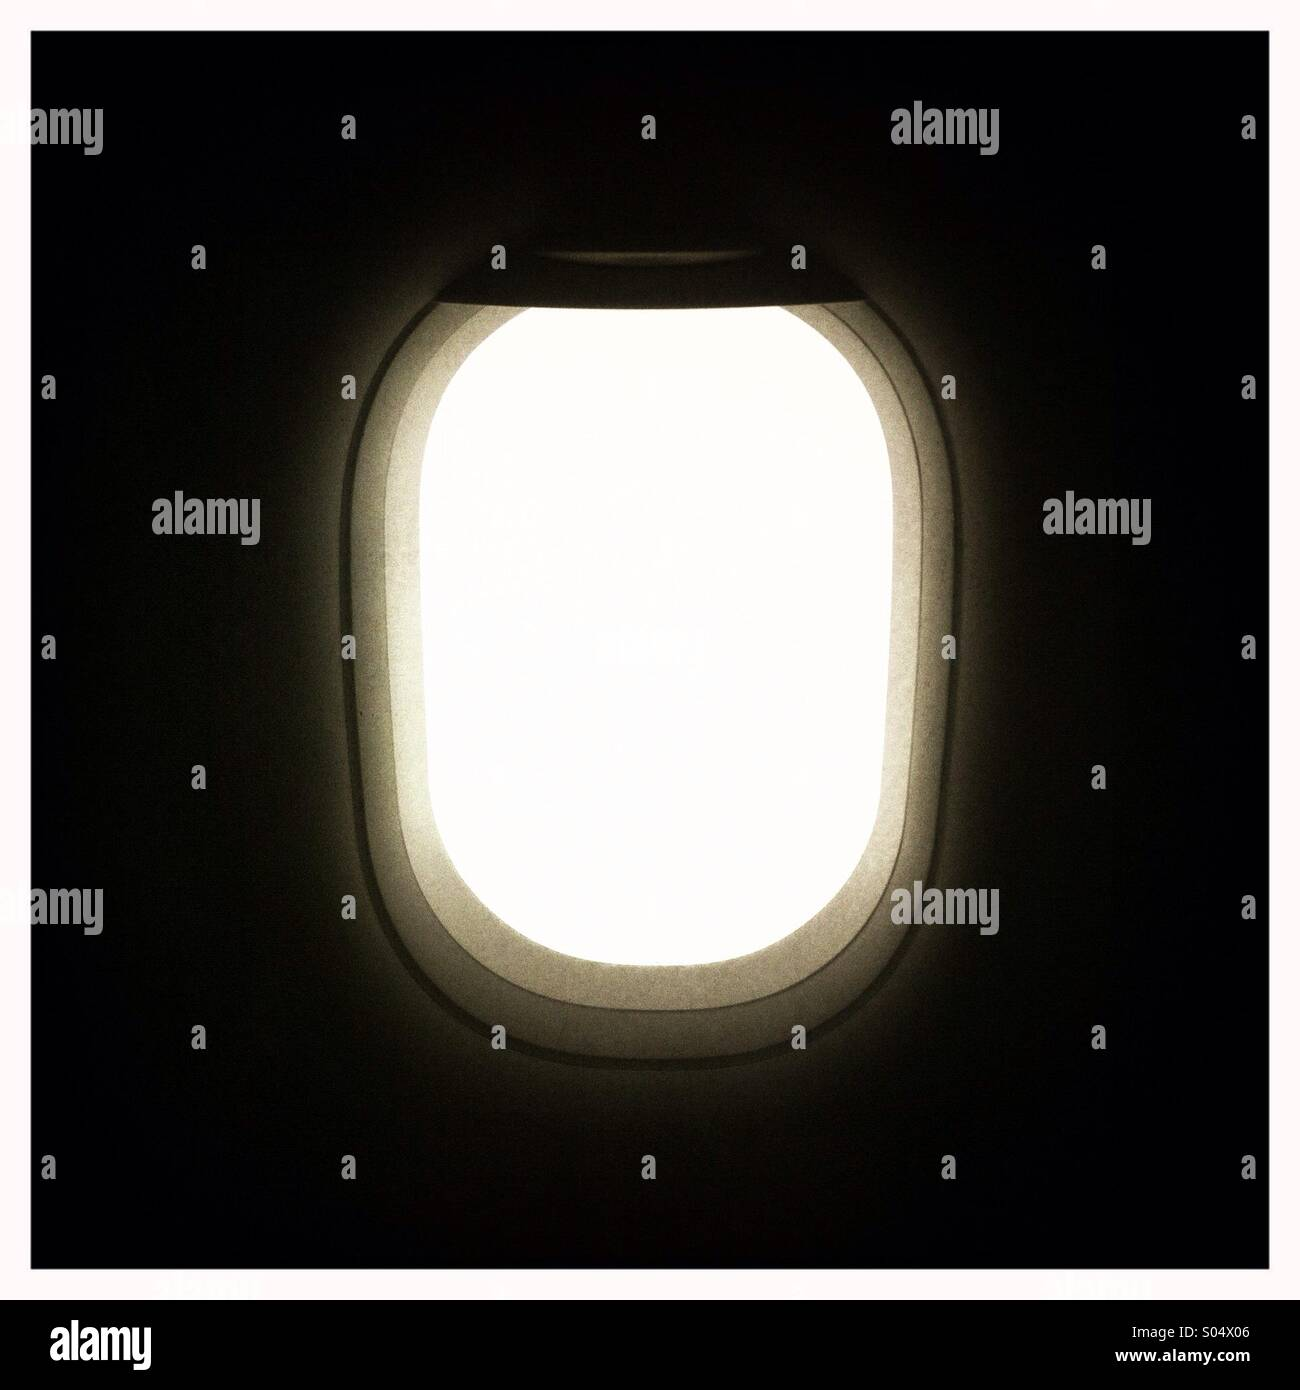 The interior view of an airplane passenger window - Stock Image